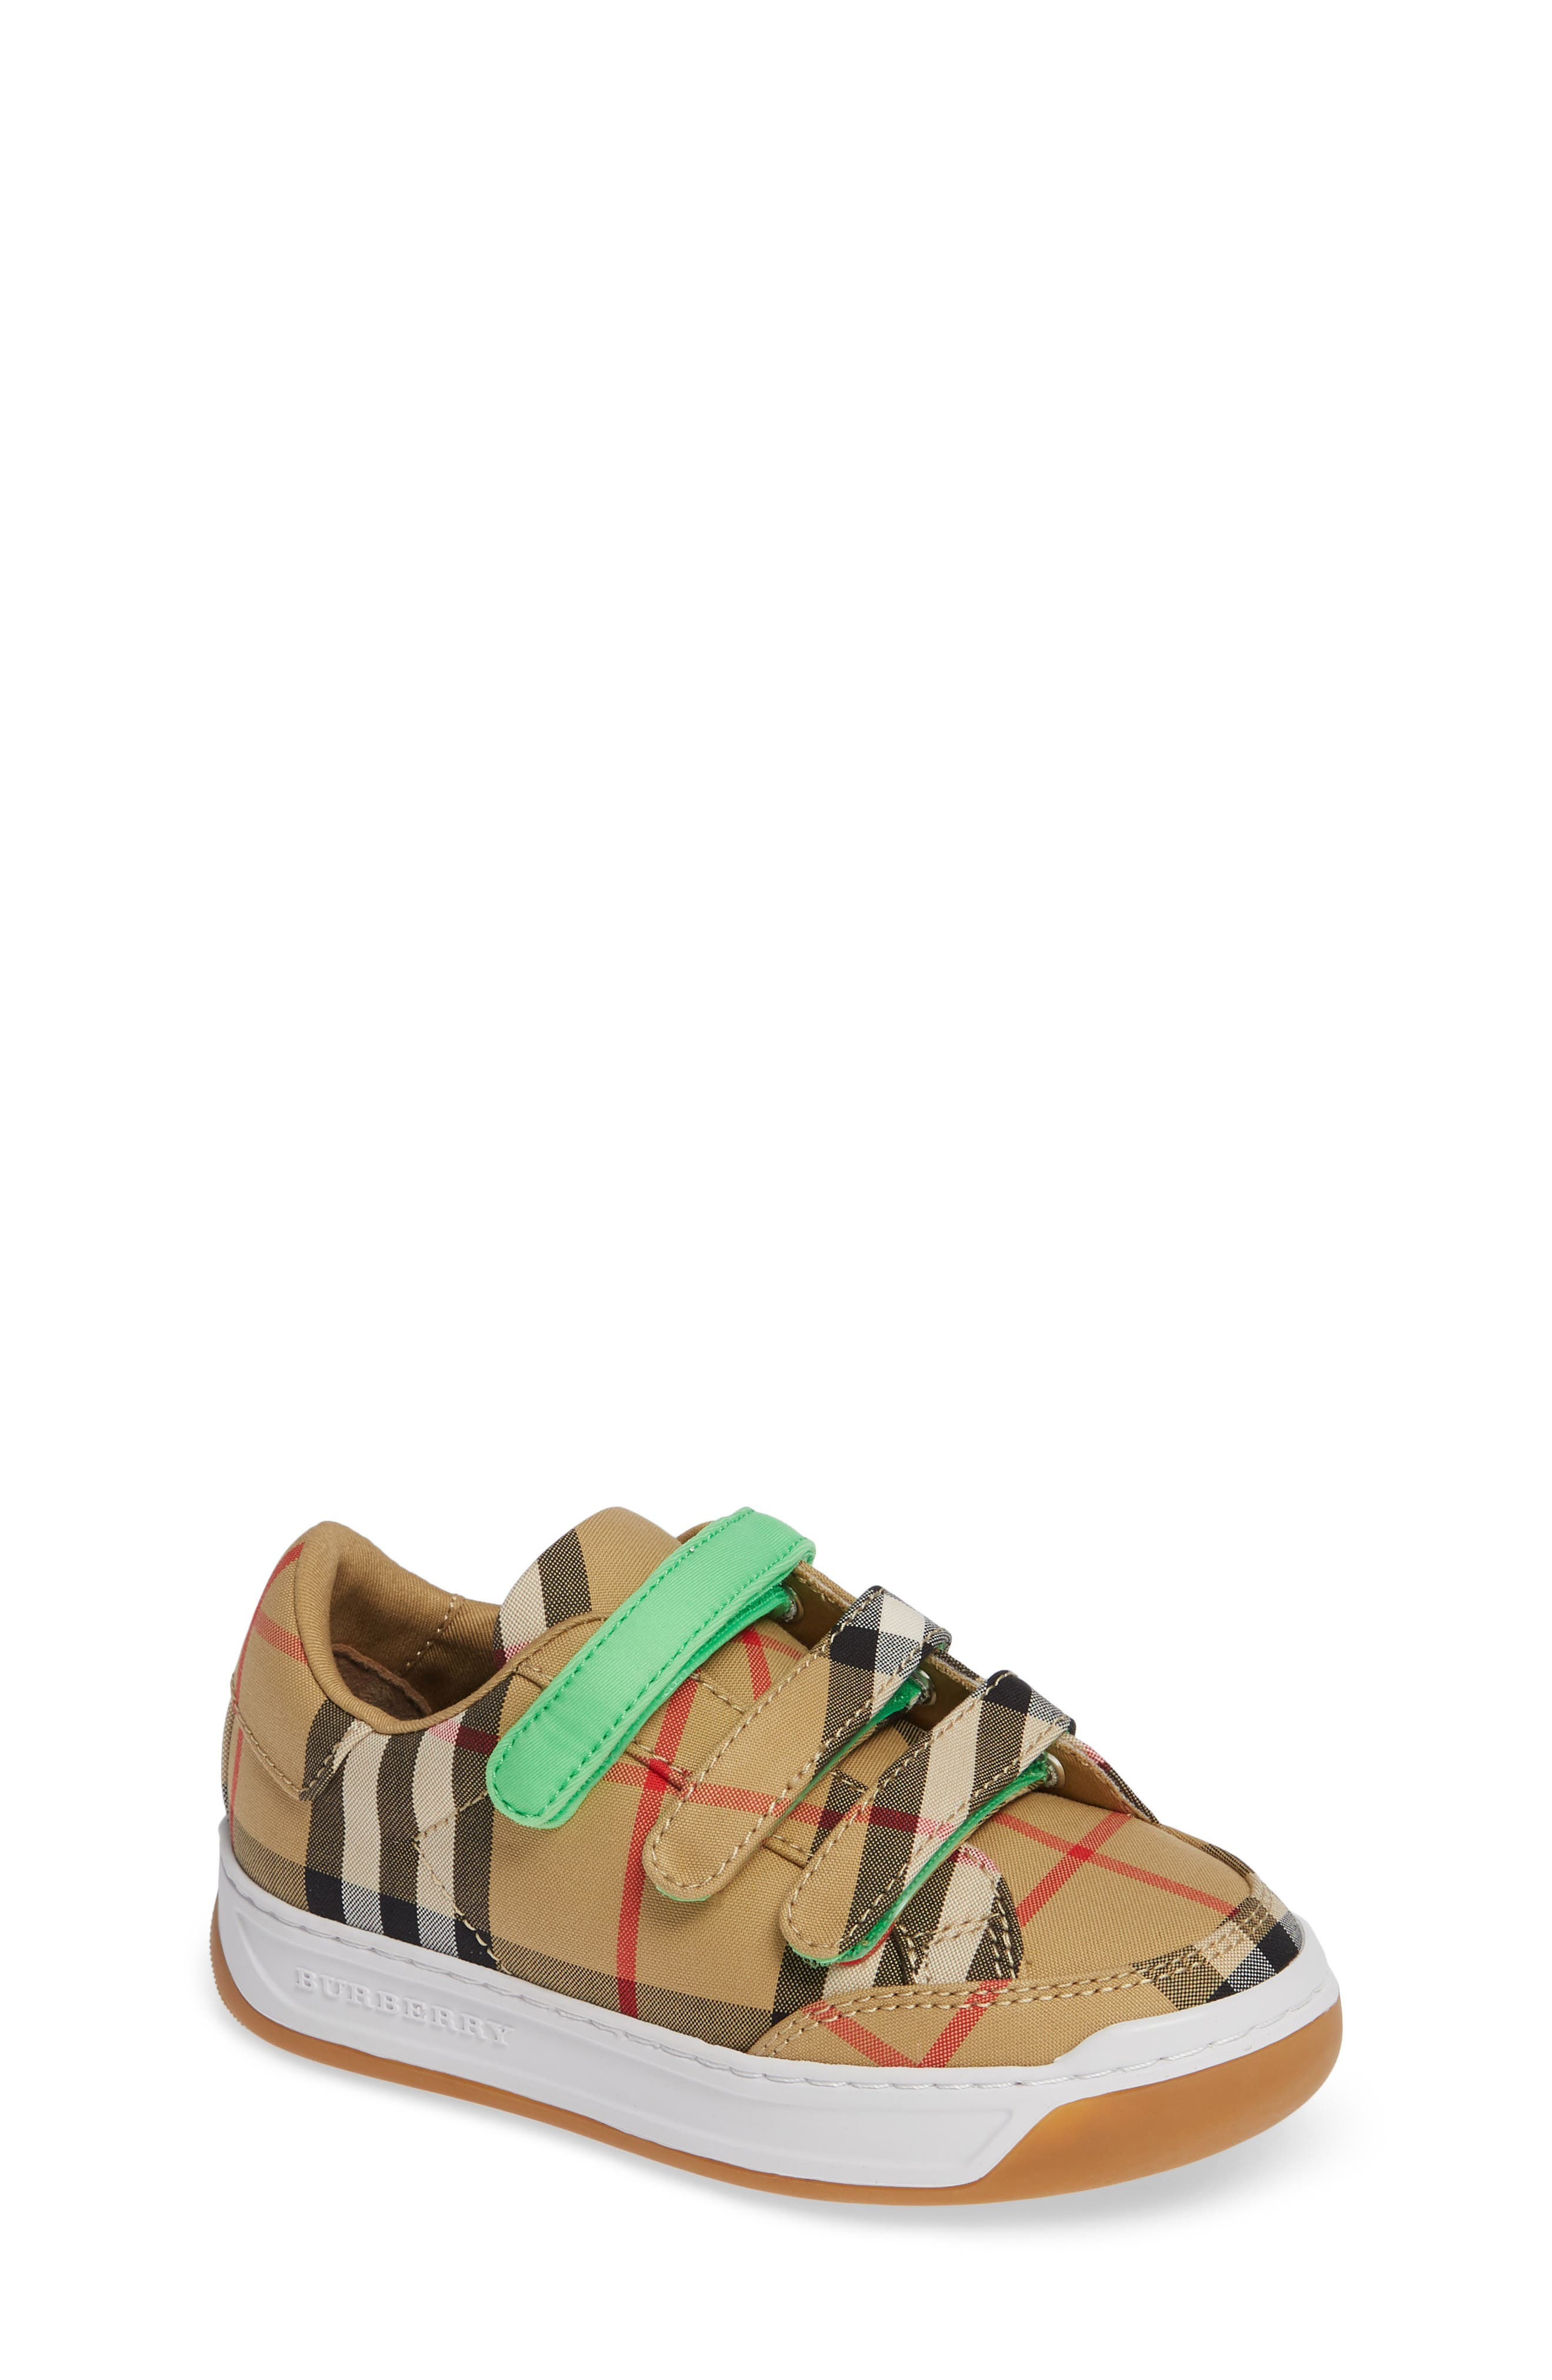 Groves Low Top Sneaker,                             Main thumbnail 1, color,                             NEON GREEN